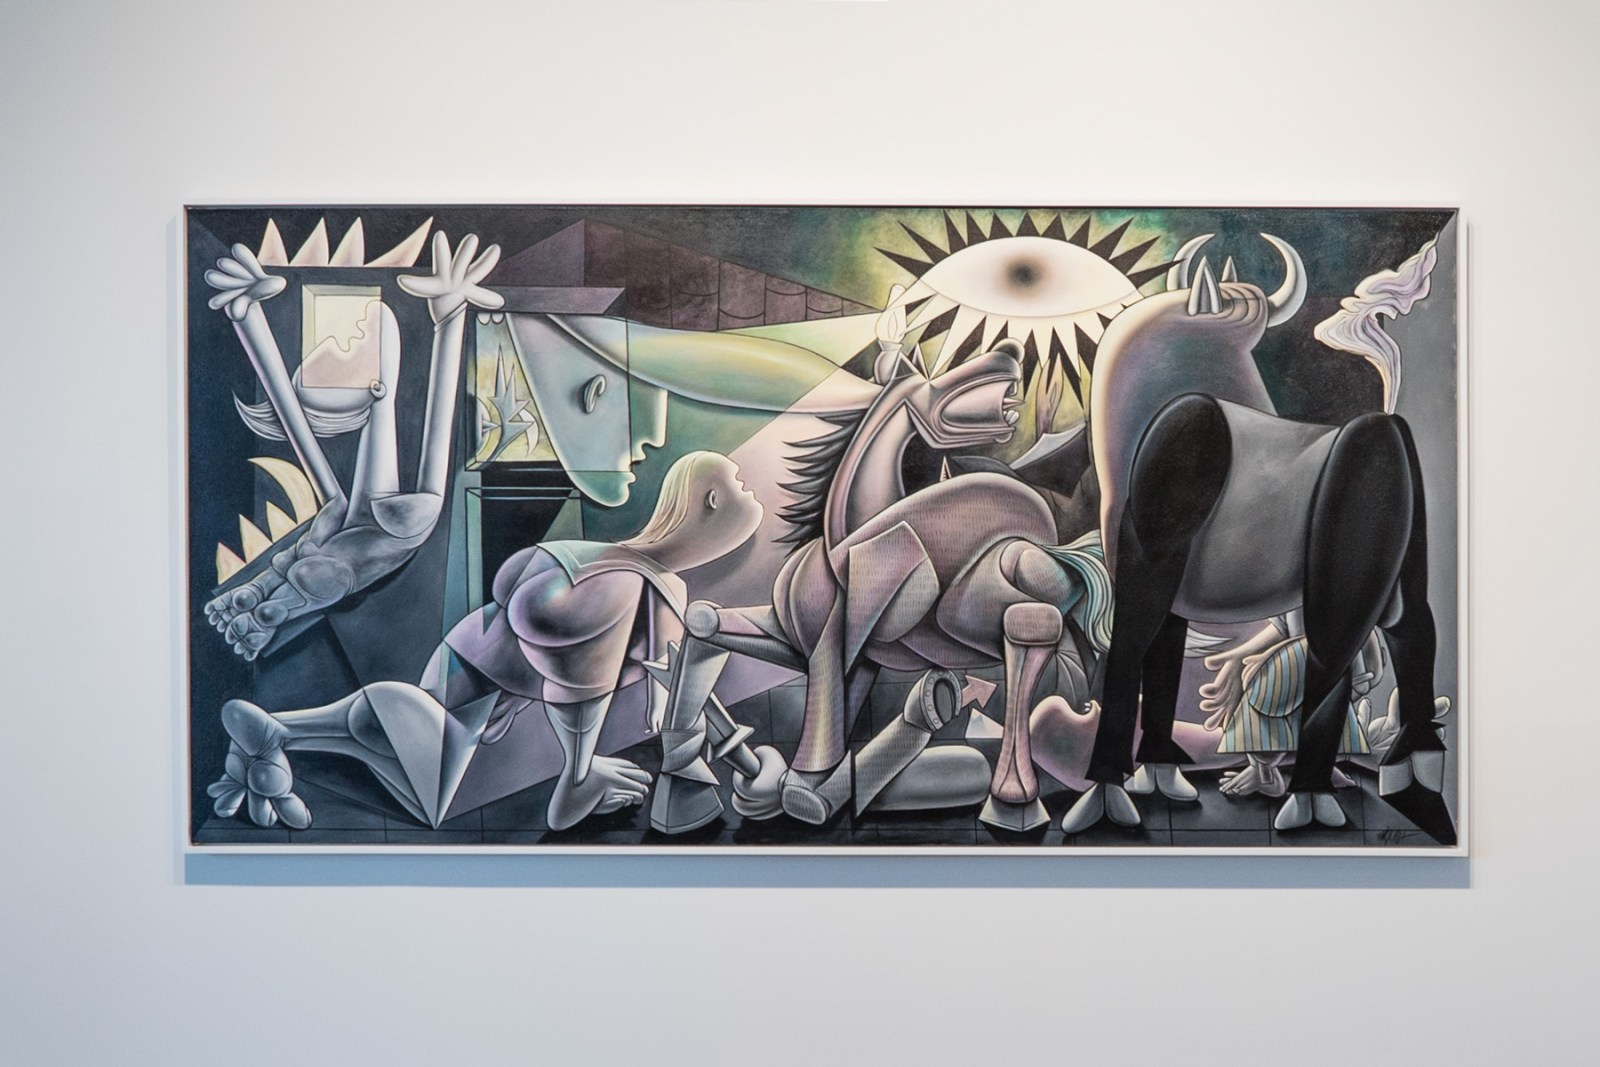 ron-english-on-pablo-picasso-guernica-4